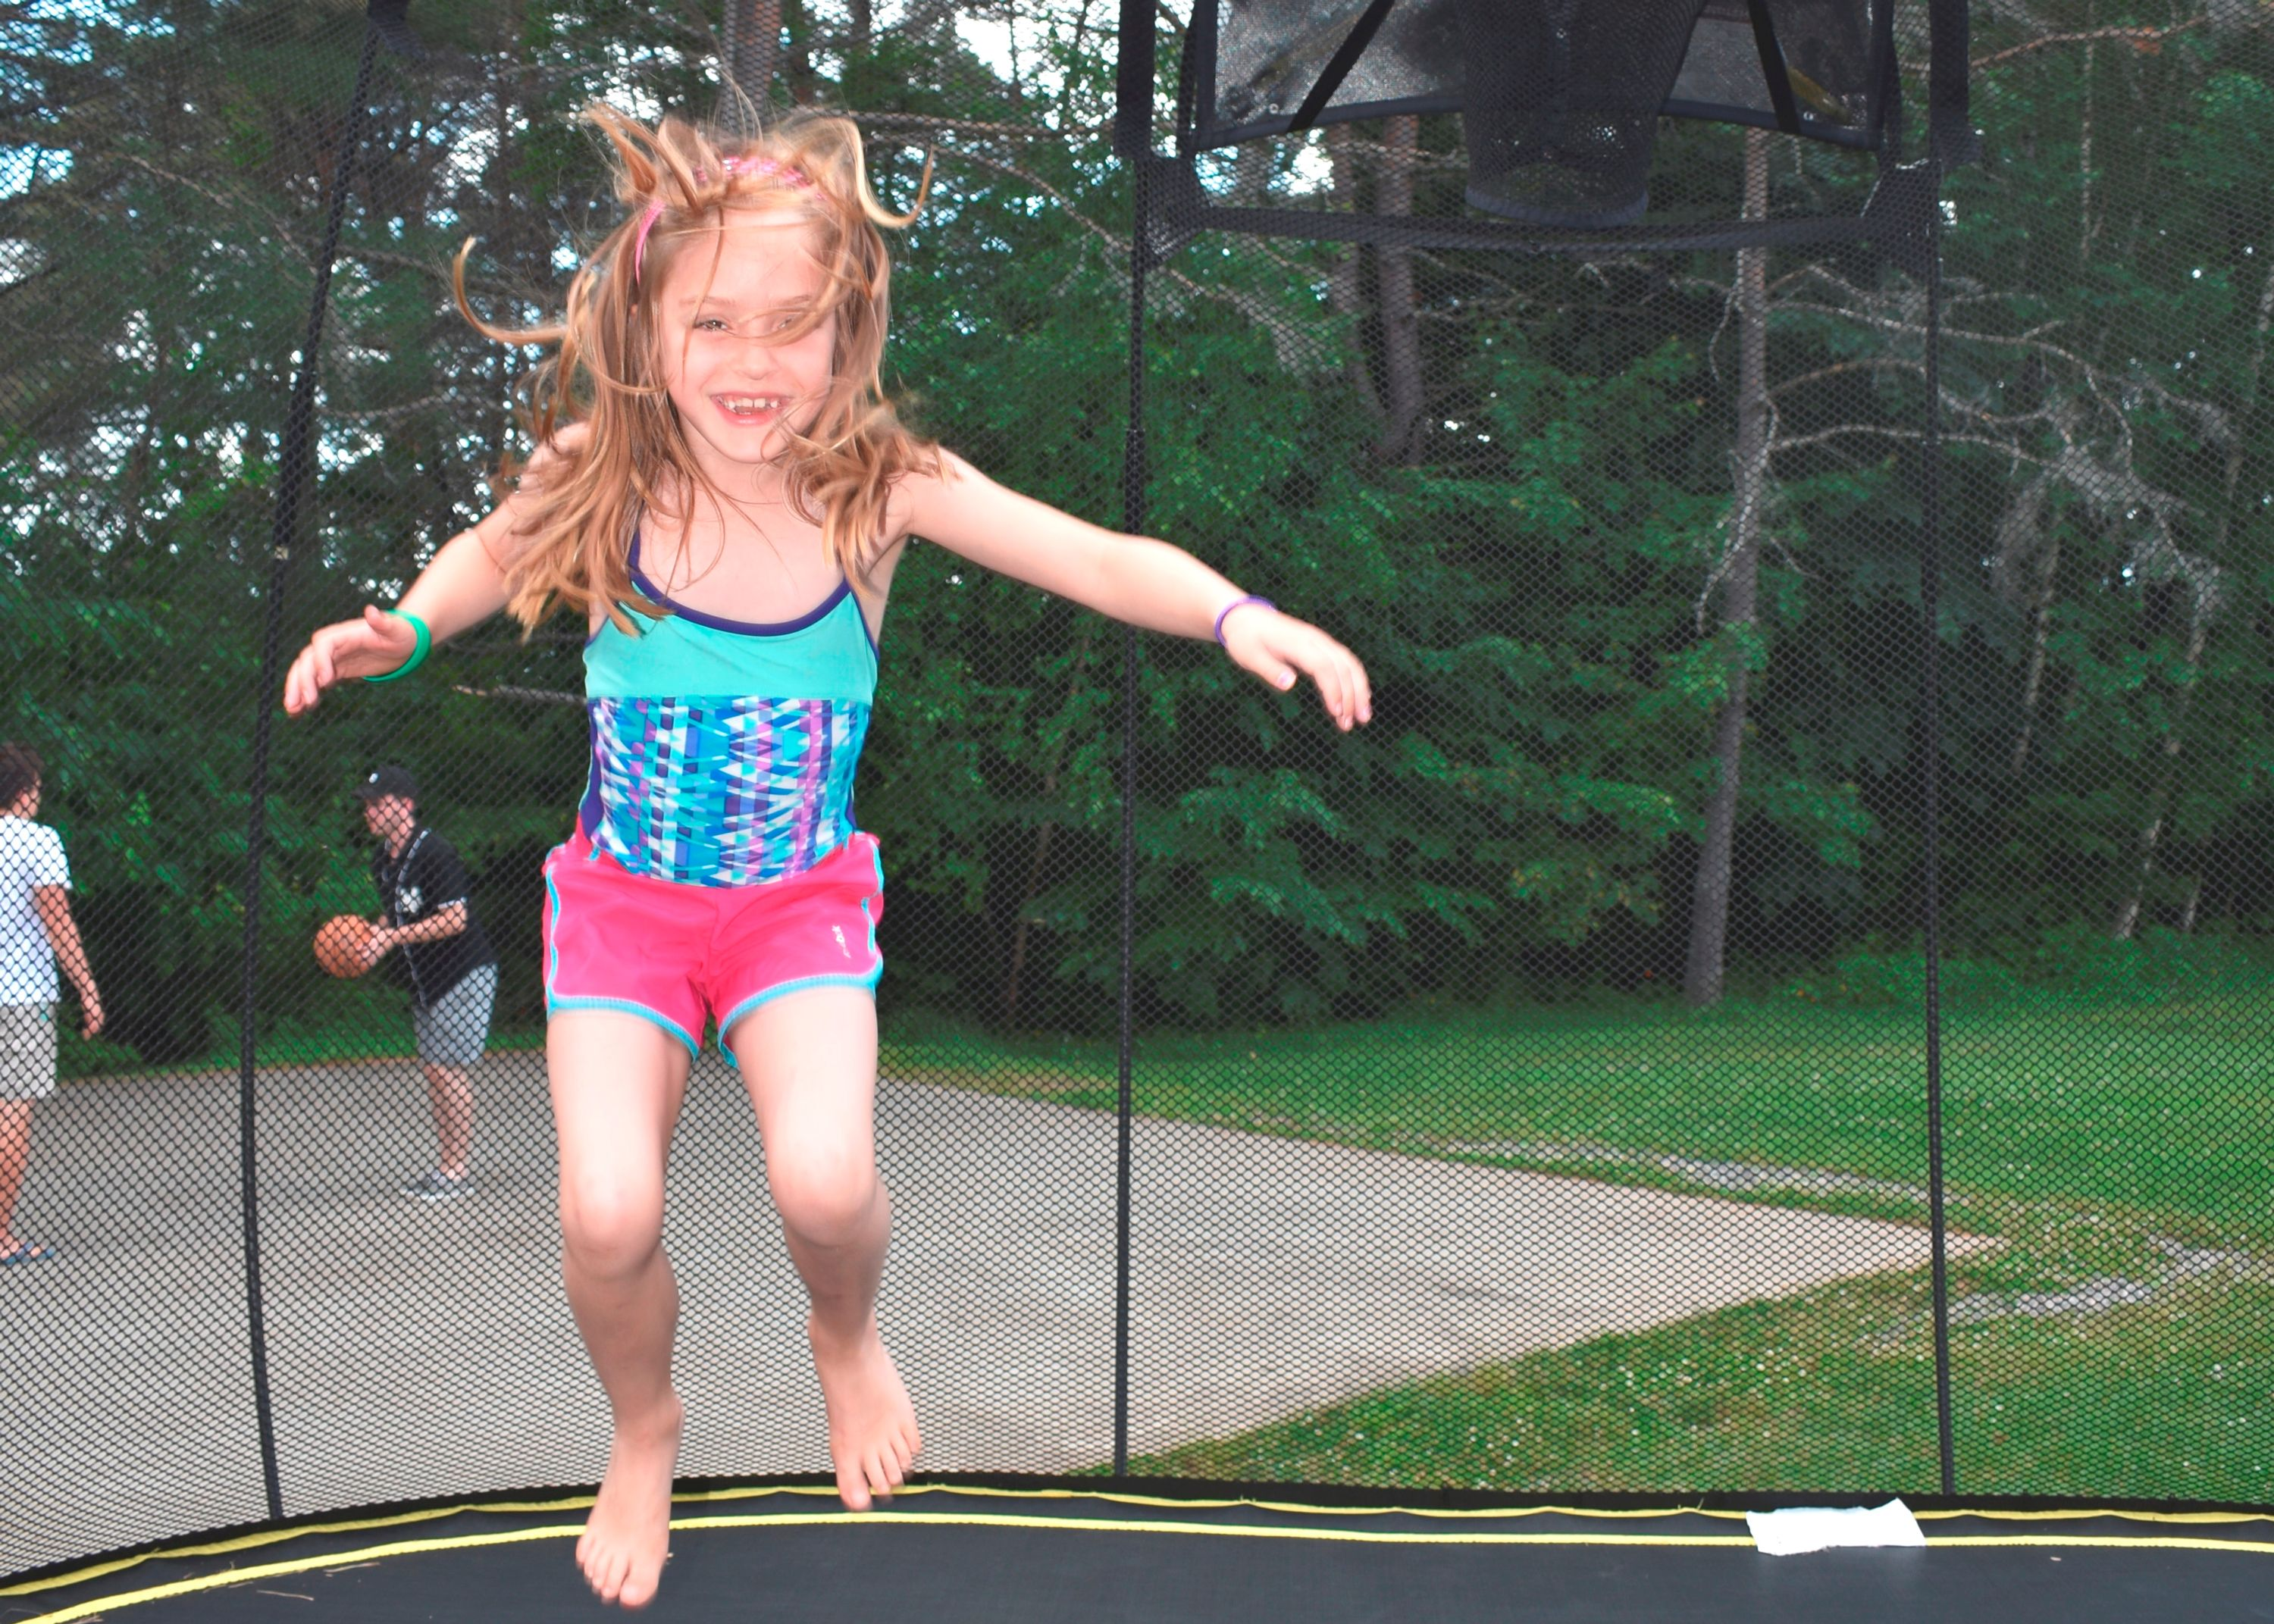 Camper jumping on trampoline at christian adventure summer camp in haliburton, ontario